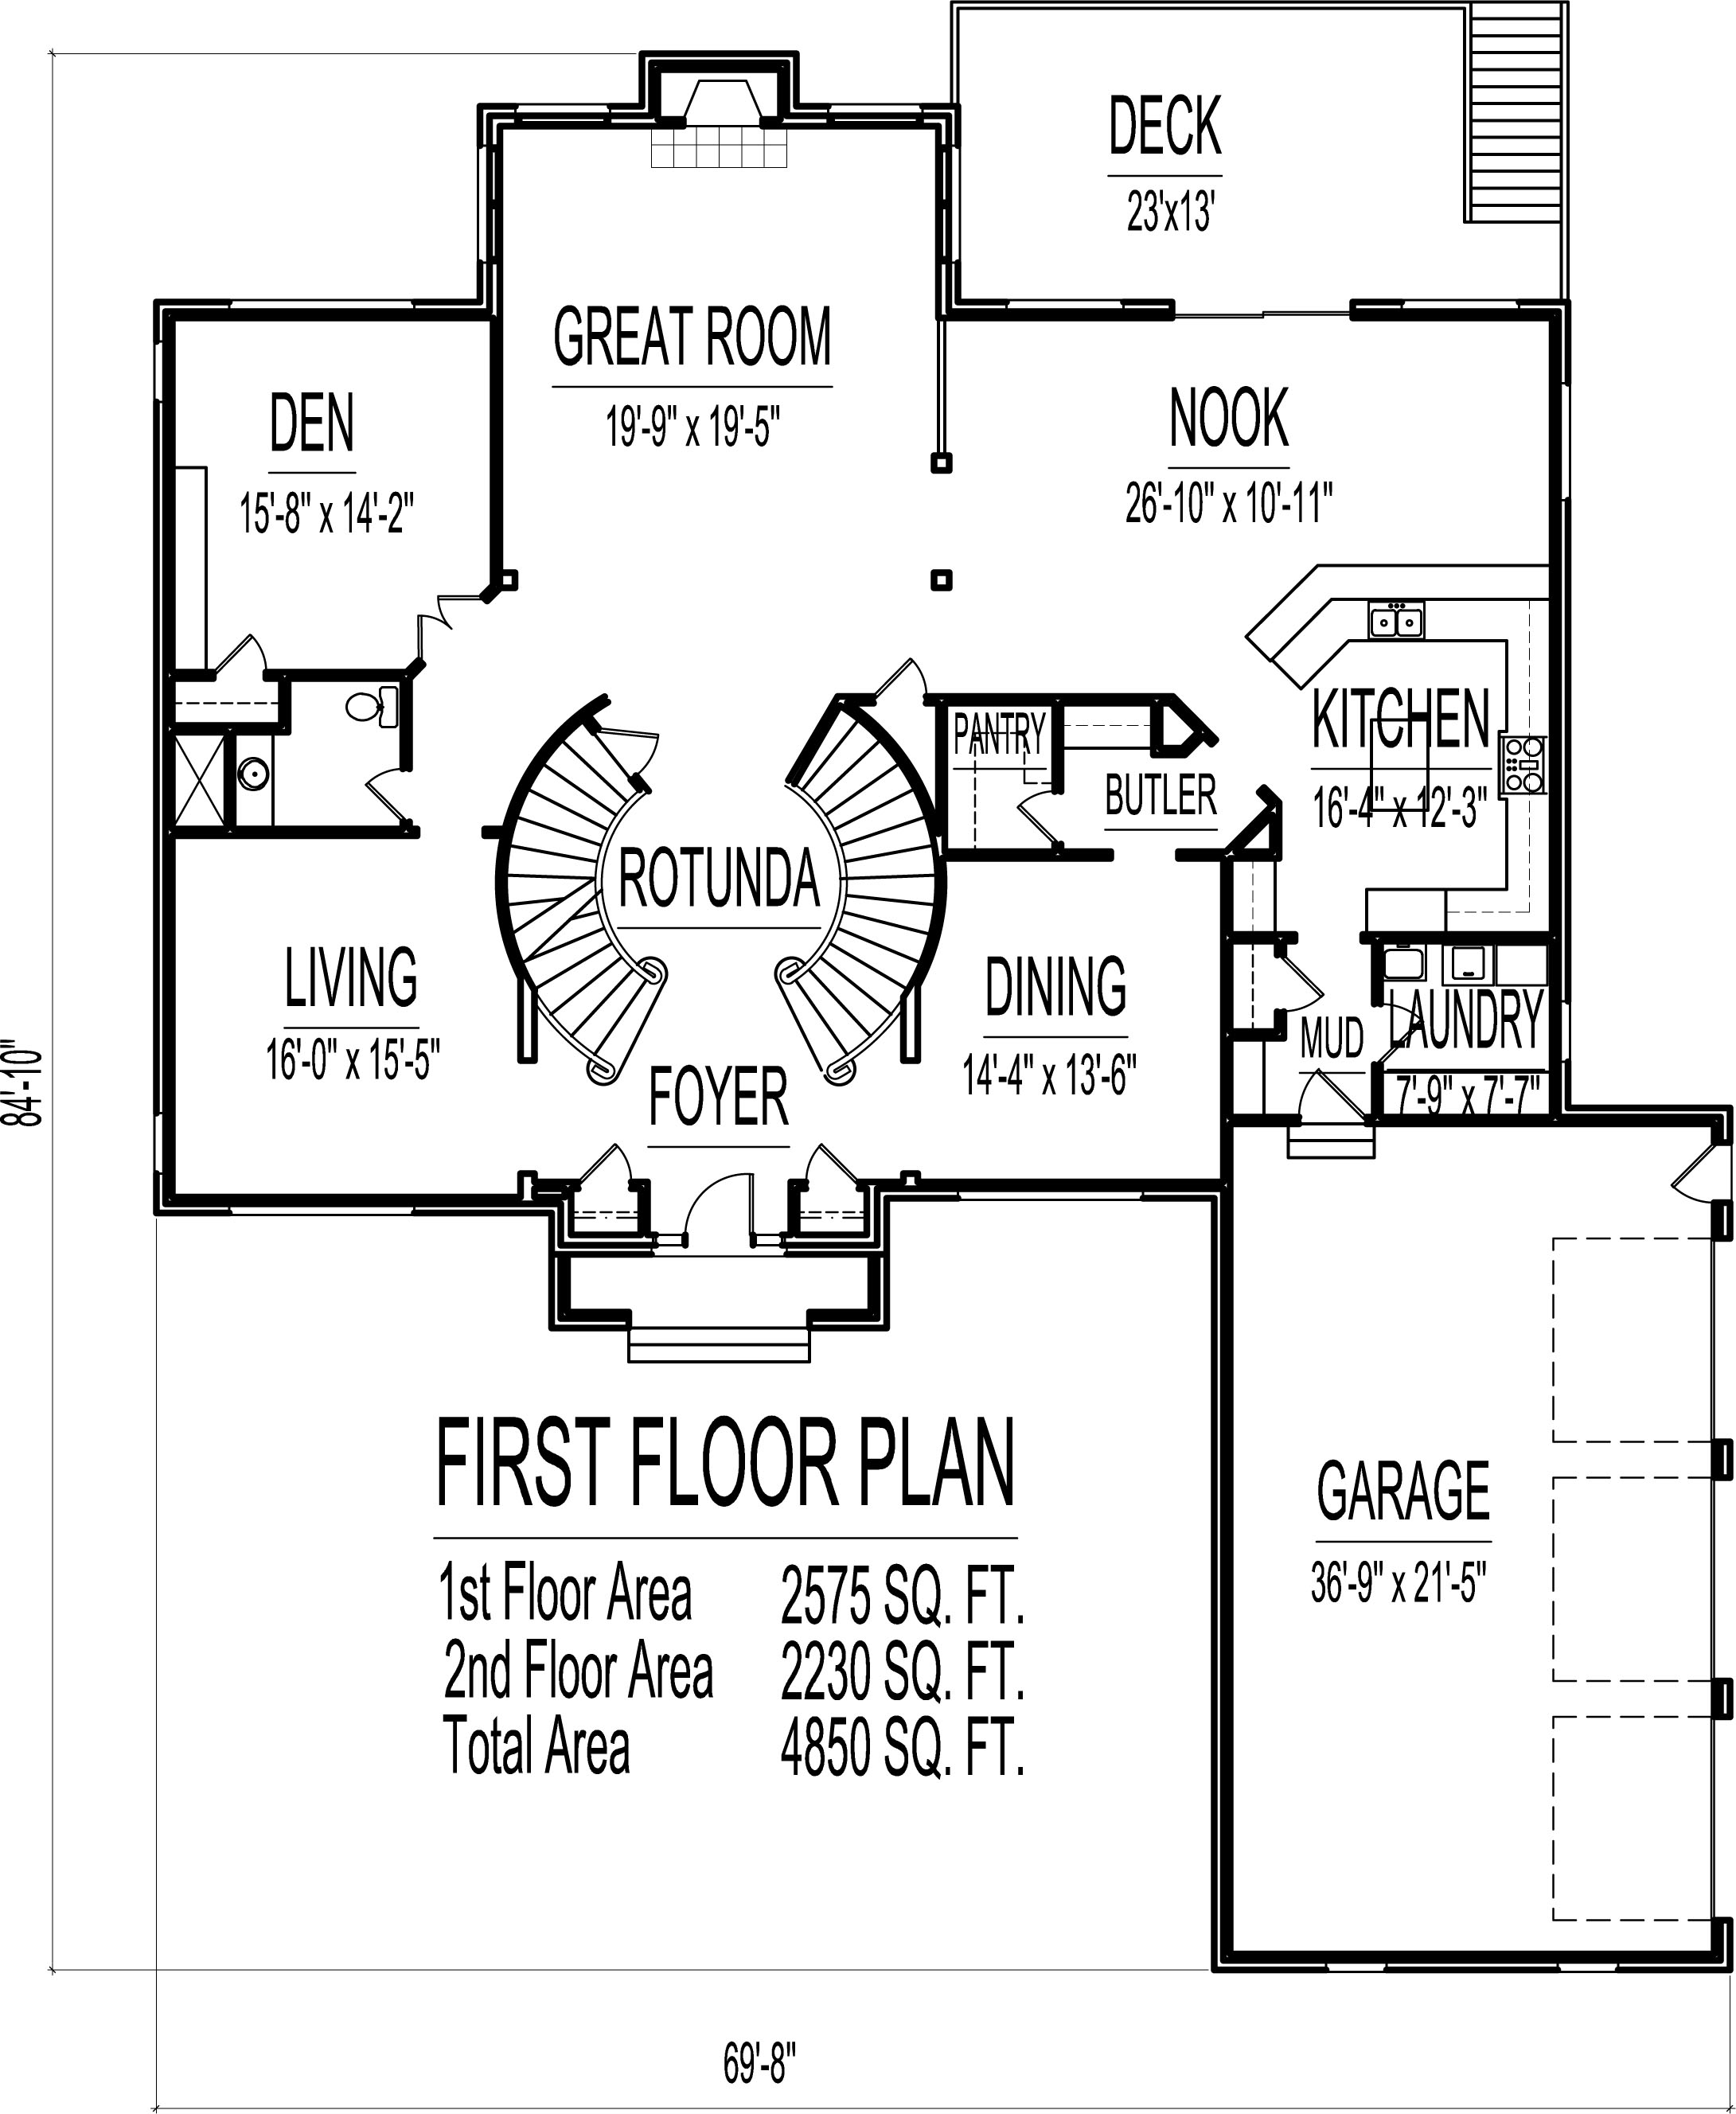 4500 Square Foot House Floor Plans 5 Bedroom 2 Story